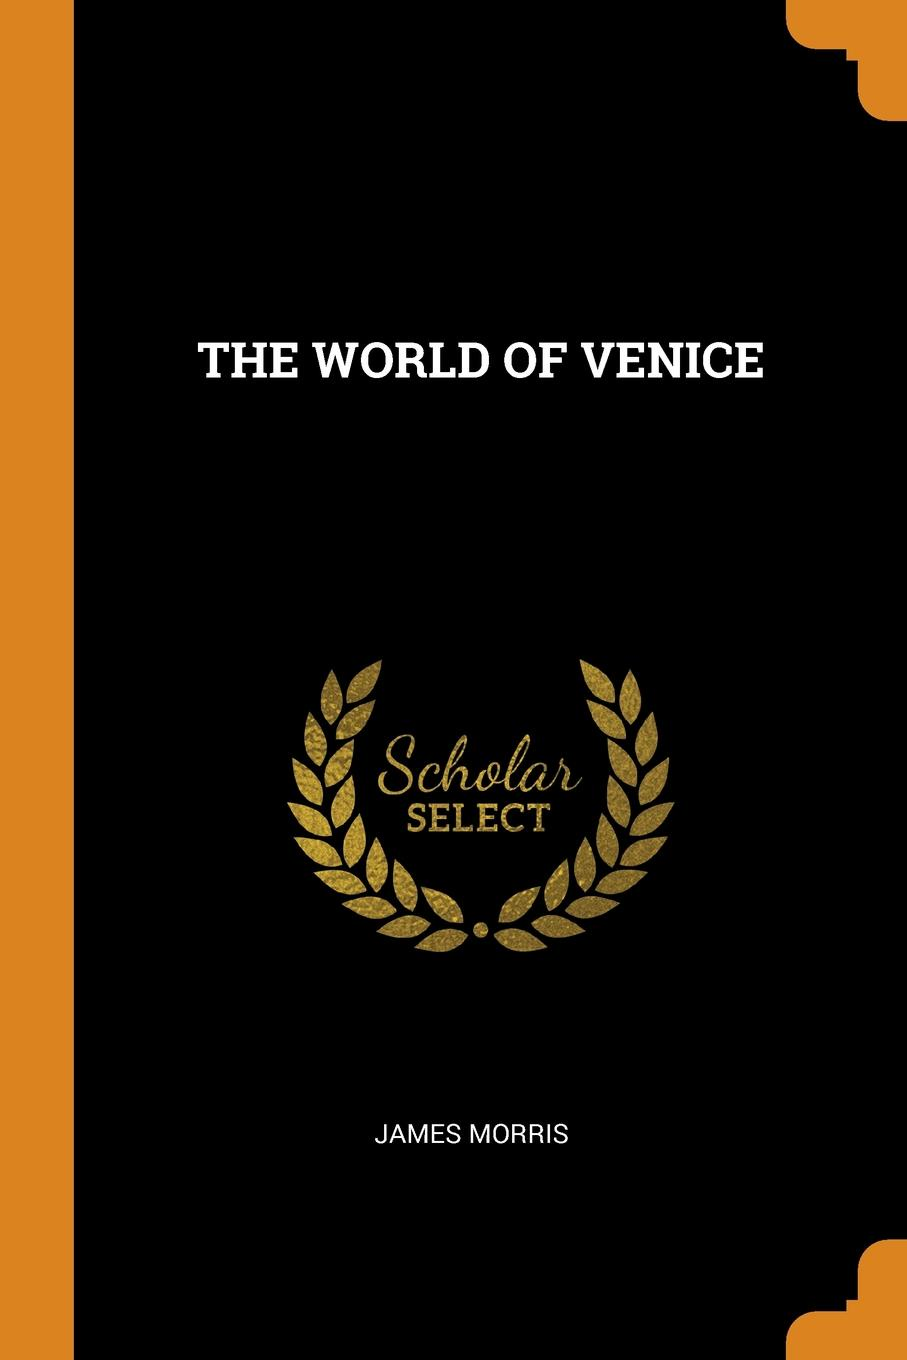 JAMES MORRIS THE WORLD OF VENICE